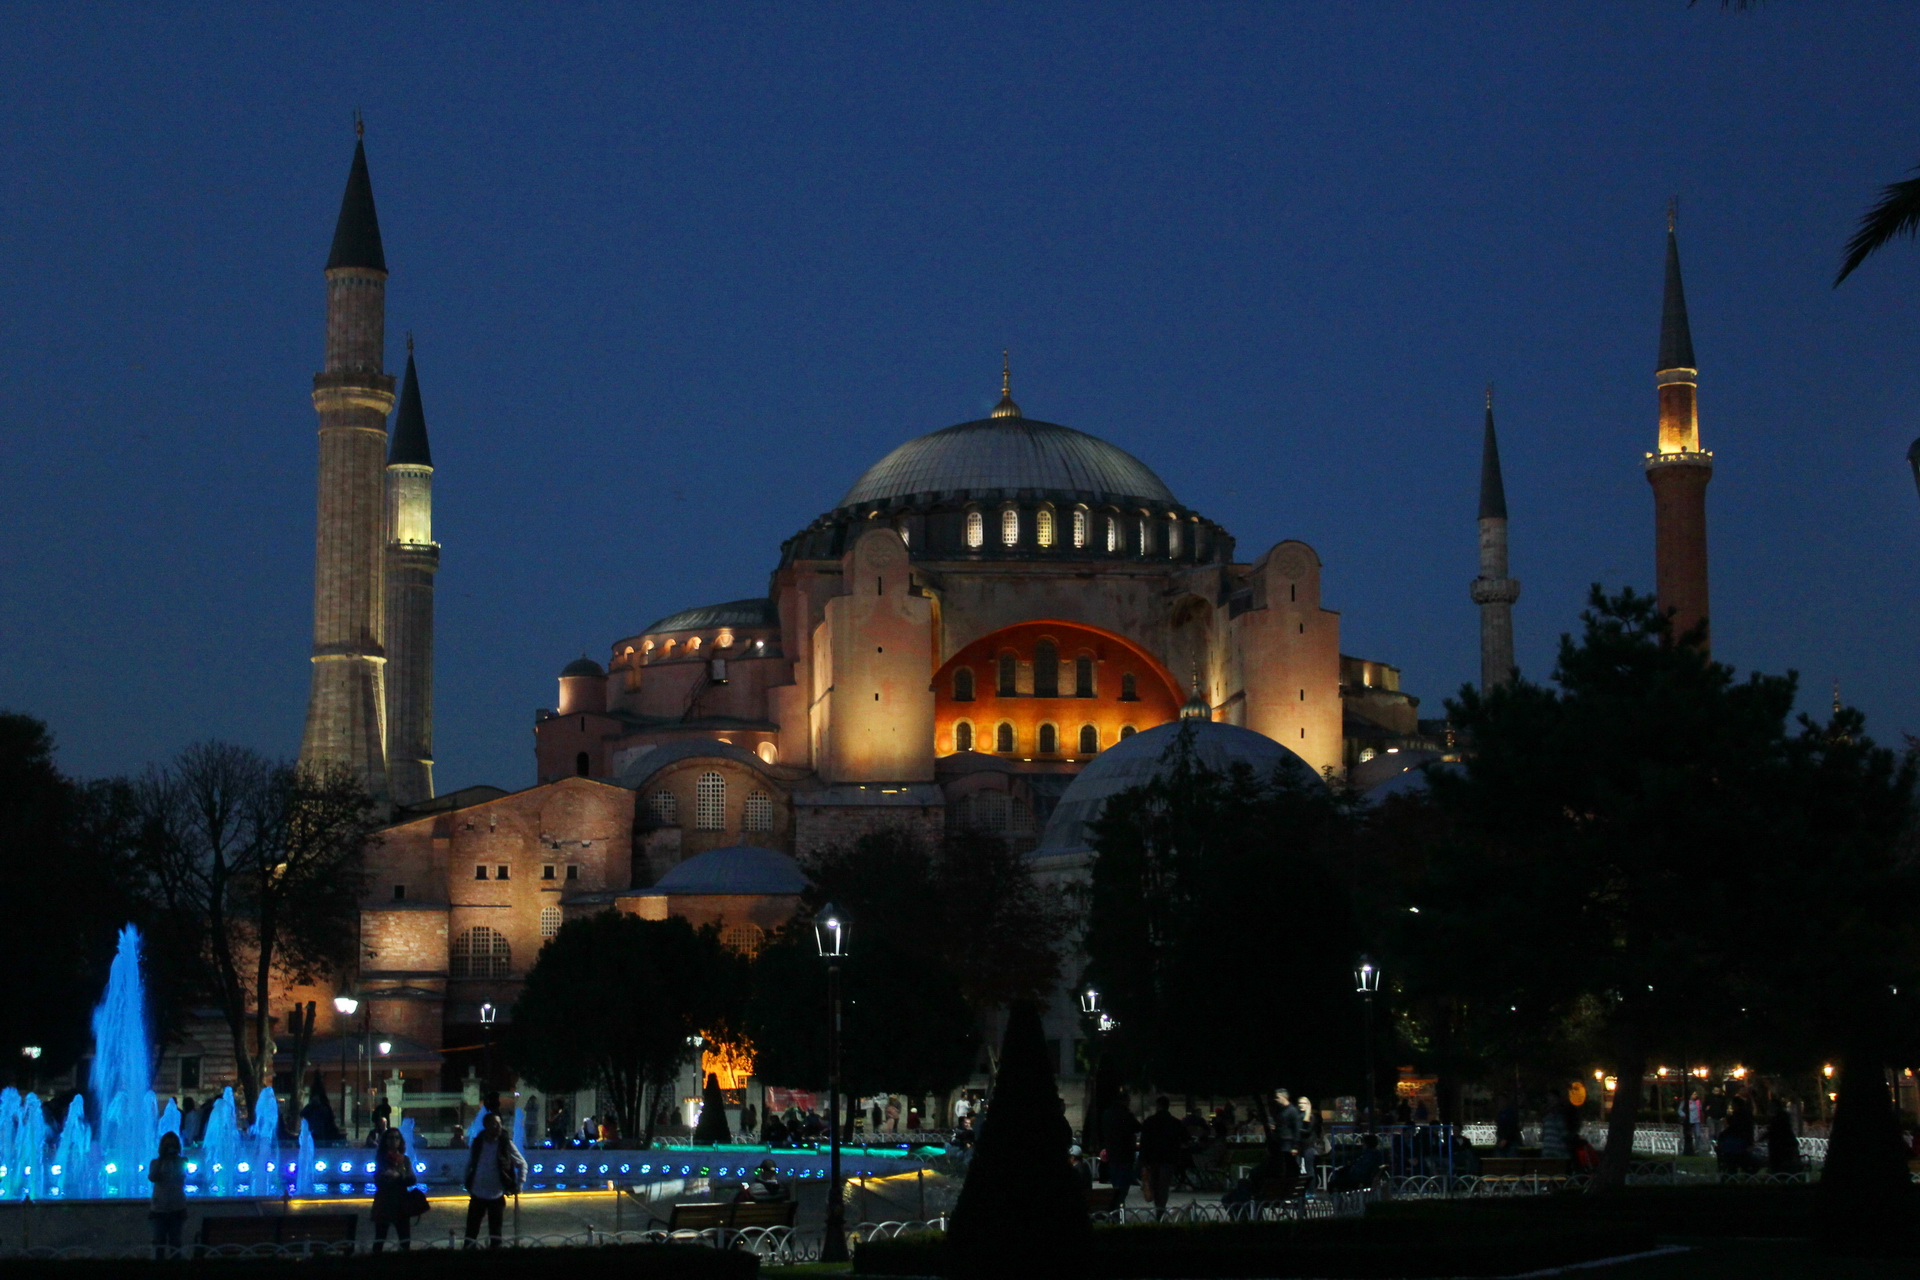 Hagia Sophia in the twilight